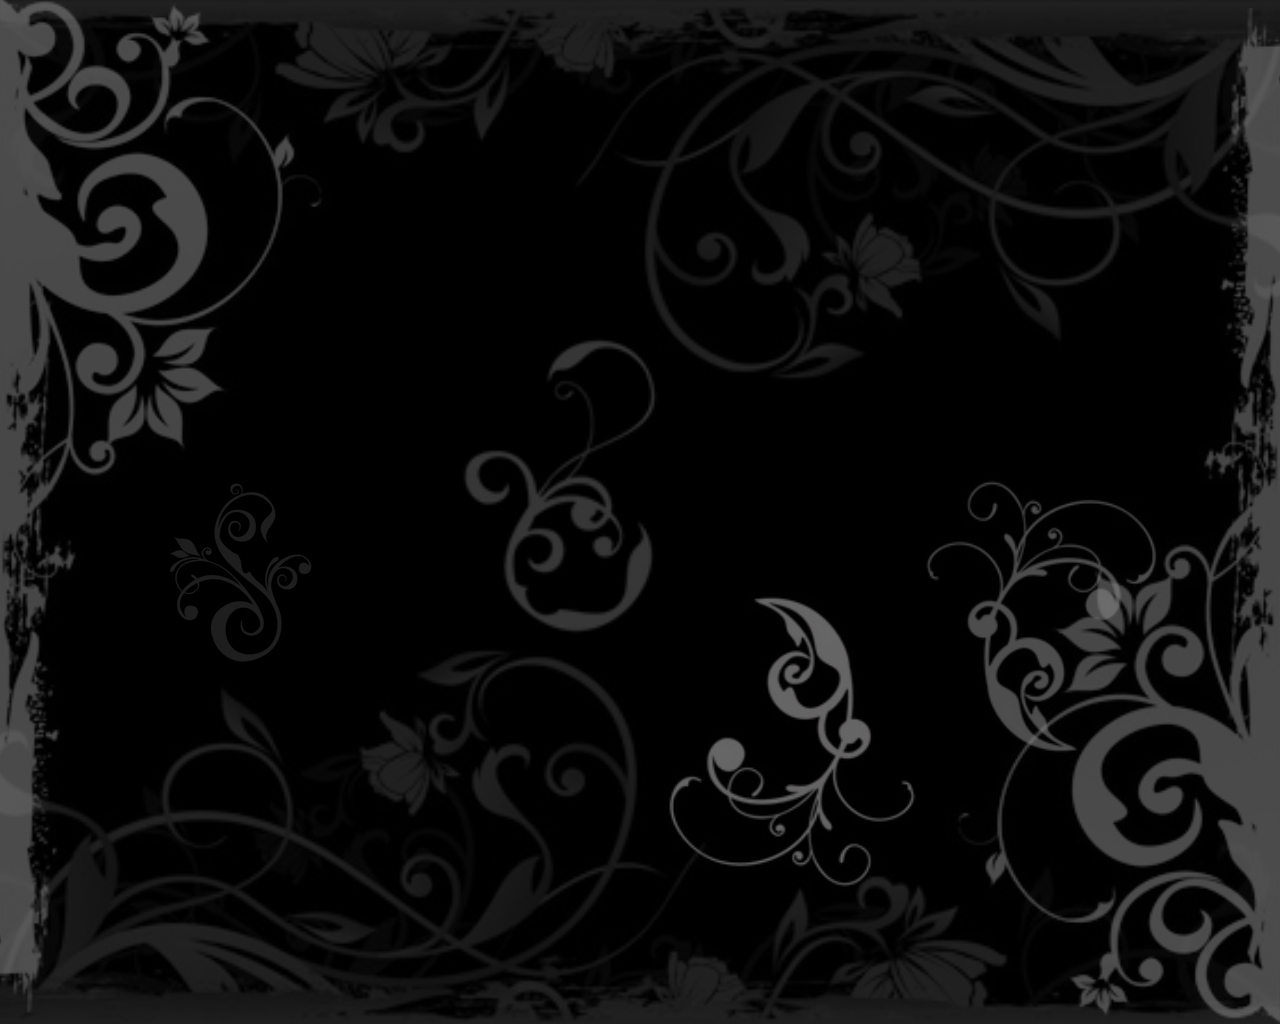 Black Wallpaper Cool Backgrounds Black 1280x1024